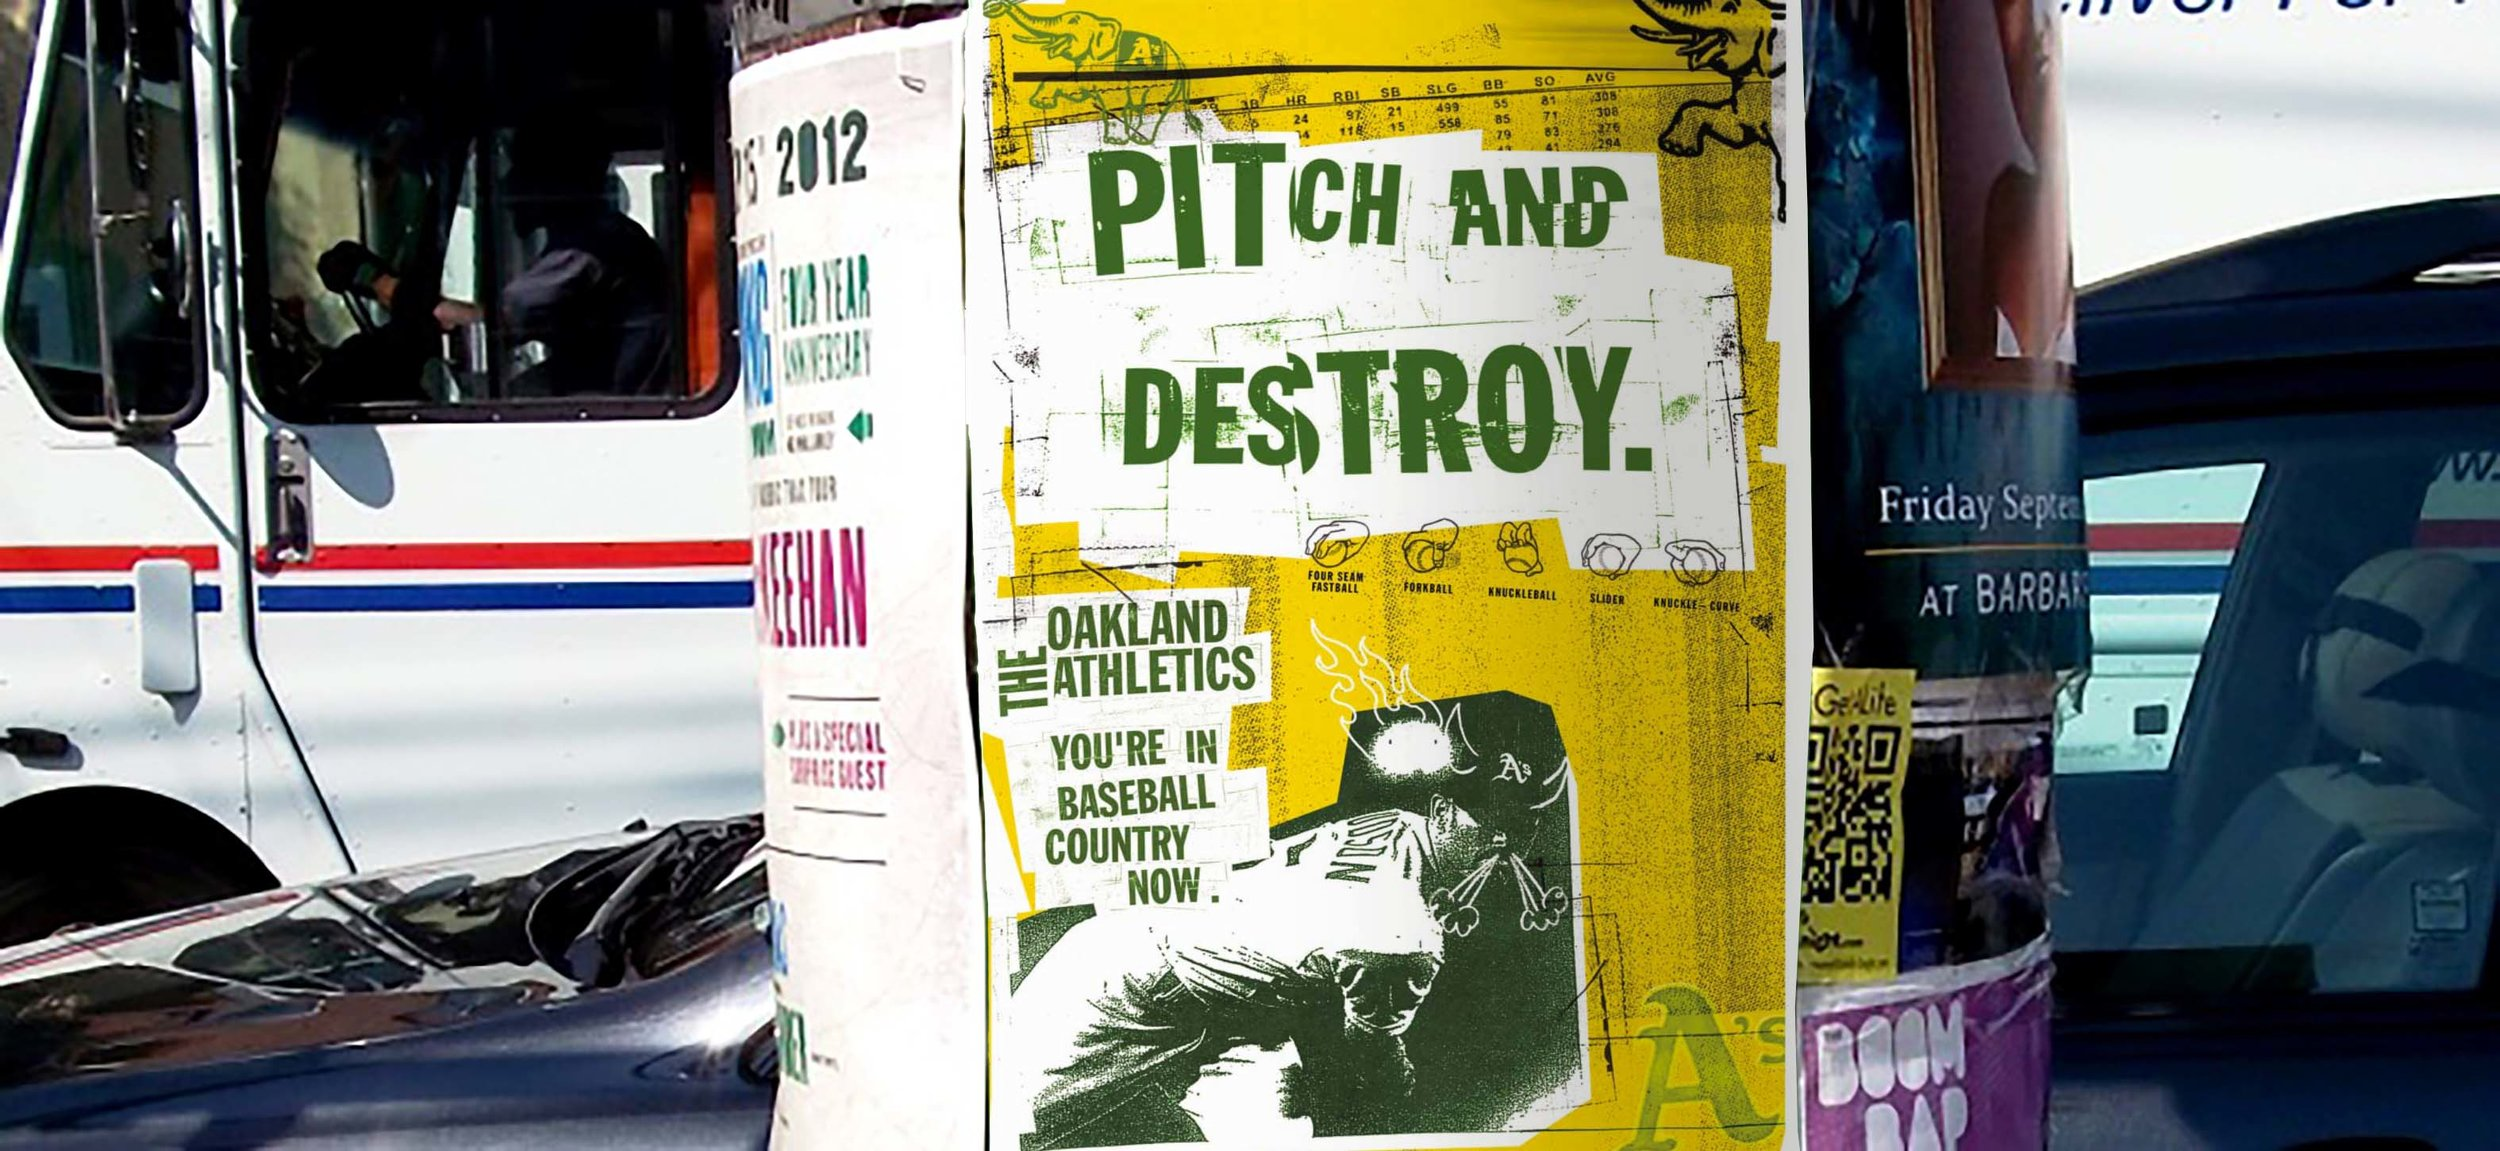 A's post pitch and destroy.jpg